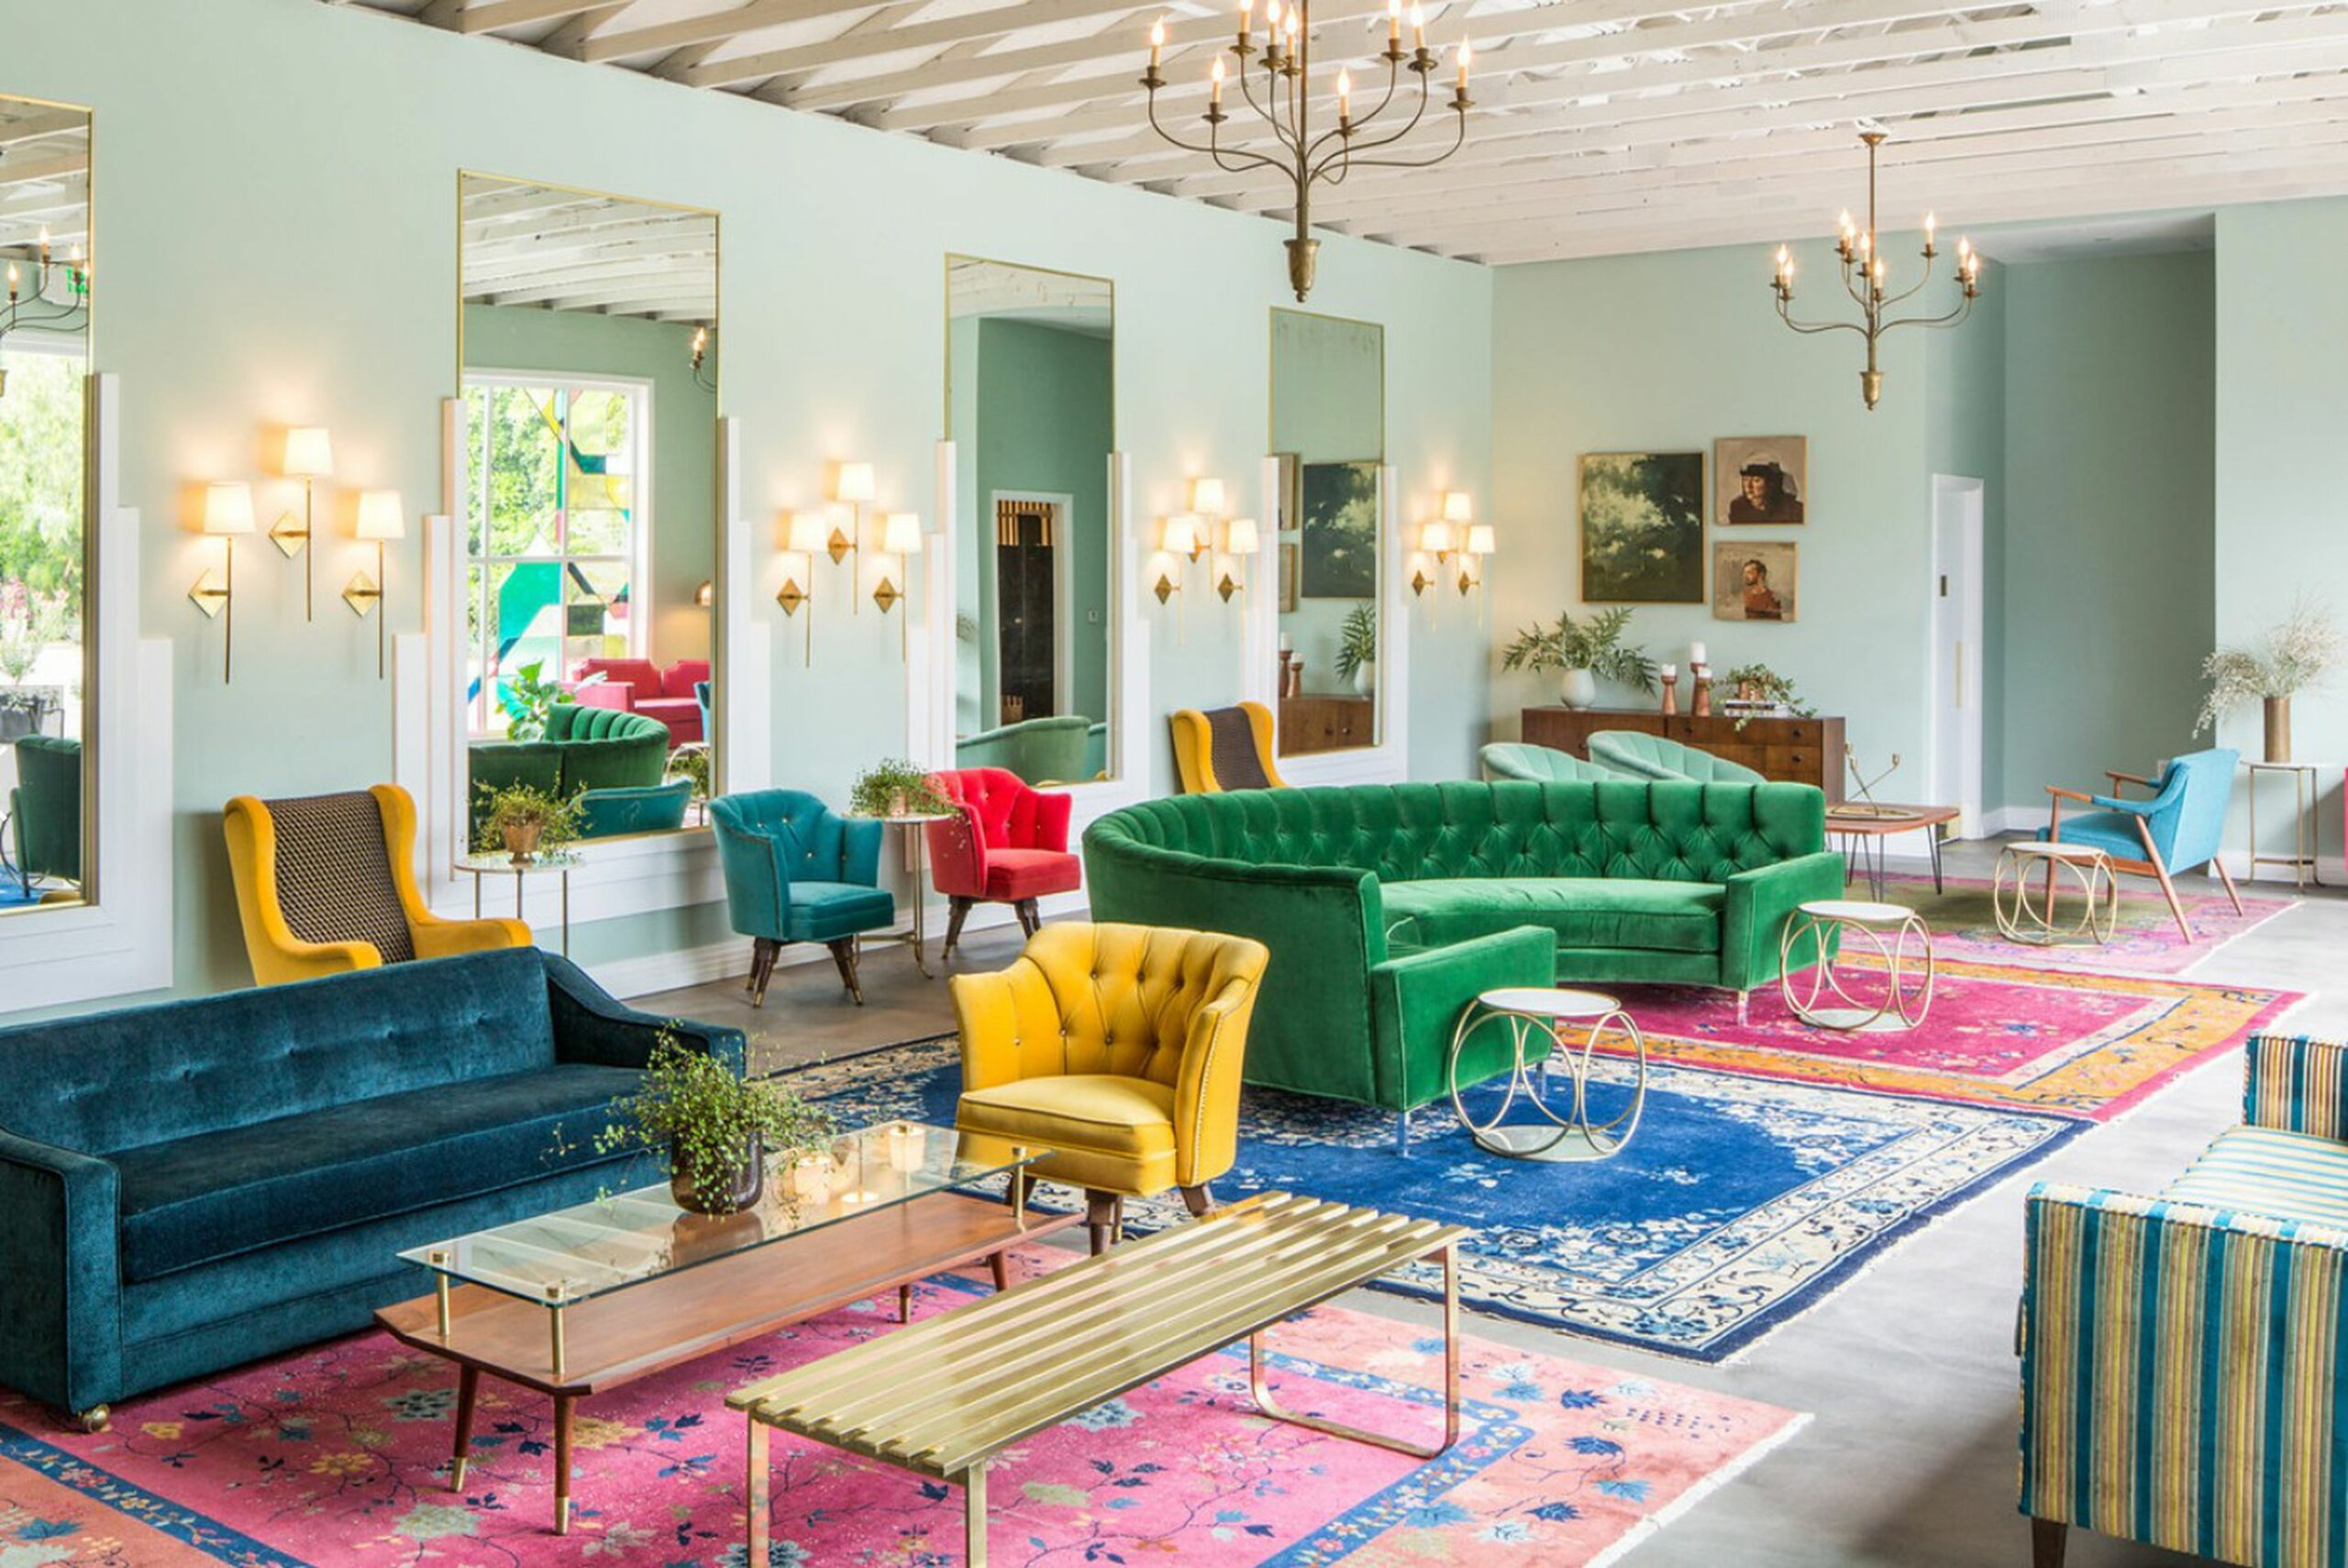 Bright space with colorful velvet ouches and eclectic chairs